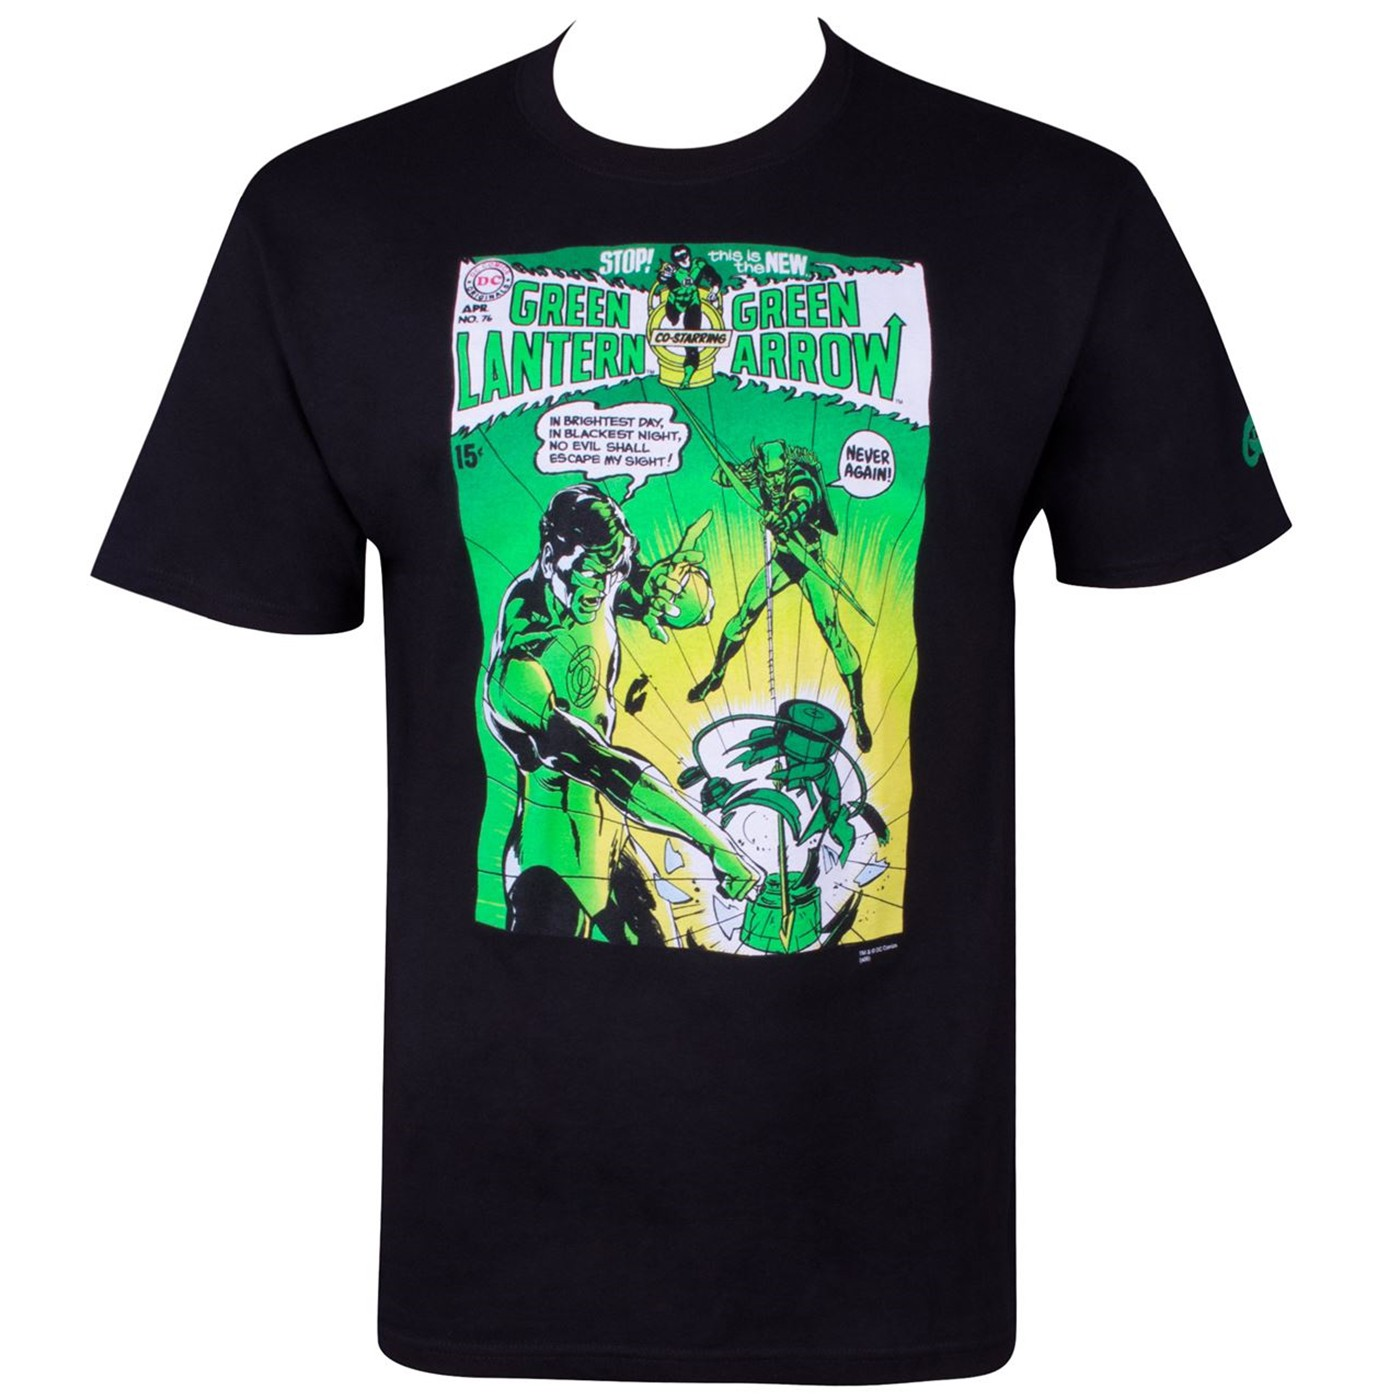 Best Green Lantern and Green Arrow #76 Comic by Neal Adams Men's T-Shirt